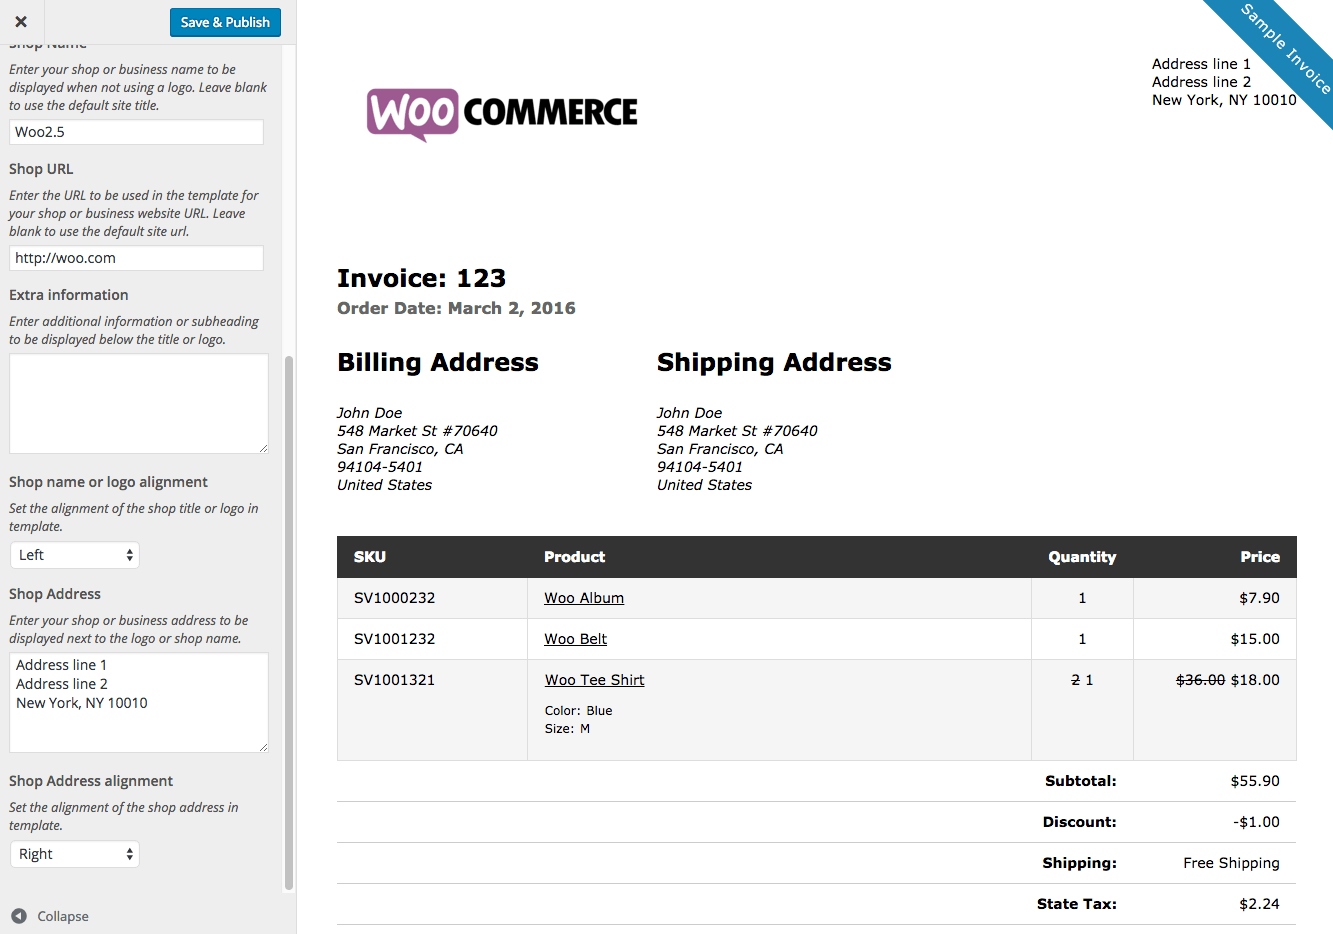 Darkfaderus  Nice Woocommerce Print Invoices Amp Packing Lists  Woocommerce Docs With Likable Woocommerce Print Invoices  Packing Lists Customizer With Agreeable Request Return Receipt Also Amazon Receipt Scanner In Addition Where Can I Get A Receipt Book And Google Read Receipt As Well As Cash For Receipts Additionally Auto Repair Receipt Template From Docswoocommercecom With Darkfaderus  Likable Woocommerce Print Invoices Amp Packing Lists  Woocommerce Docs With Agreeable Woocommerce Print Invoices  Packing Lists Customizer And Nice Request Return Receipt Also Amazon Receipt Scanner In Addition Where Can I Get A Receipt Book From Docswoocommercecom